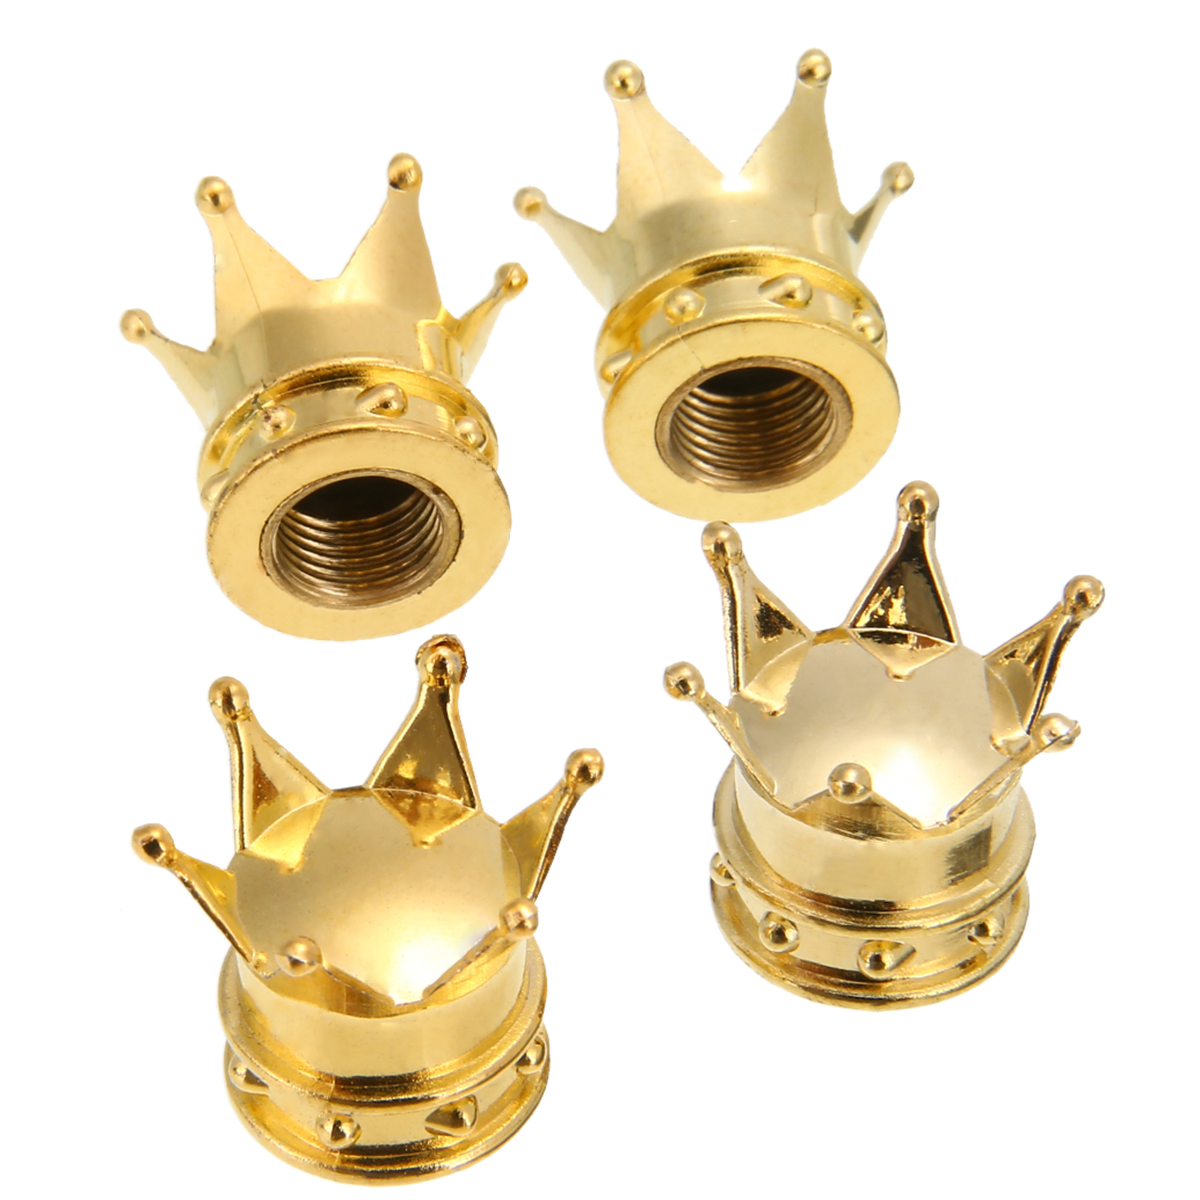 4Pcs/Set Crown Bicycle Tyre Wheel Stem Air Valve Caps Tire Valve Gold For Auto Truck Bike Car Cycling Accessories